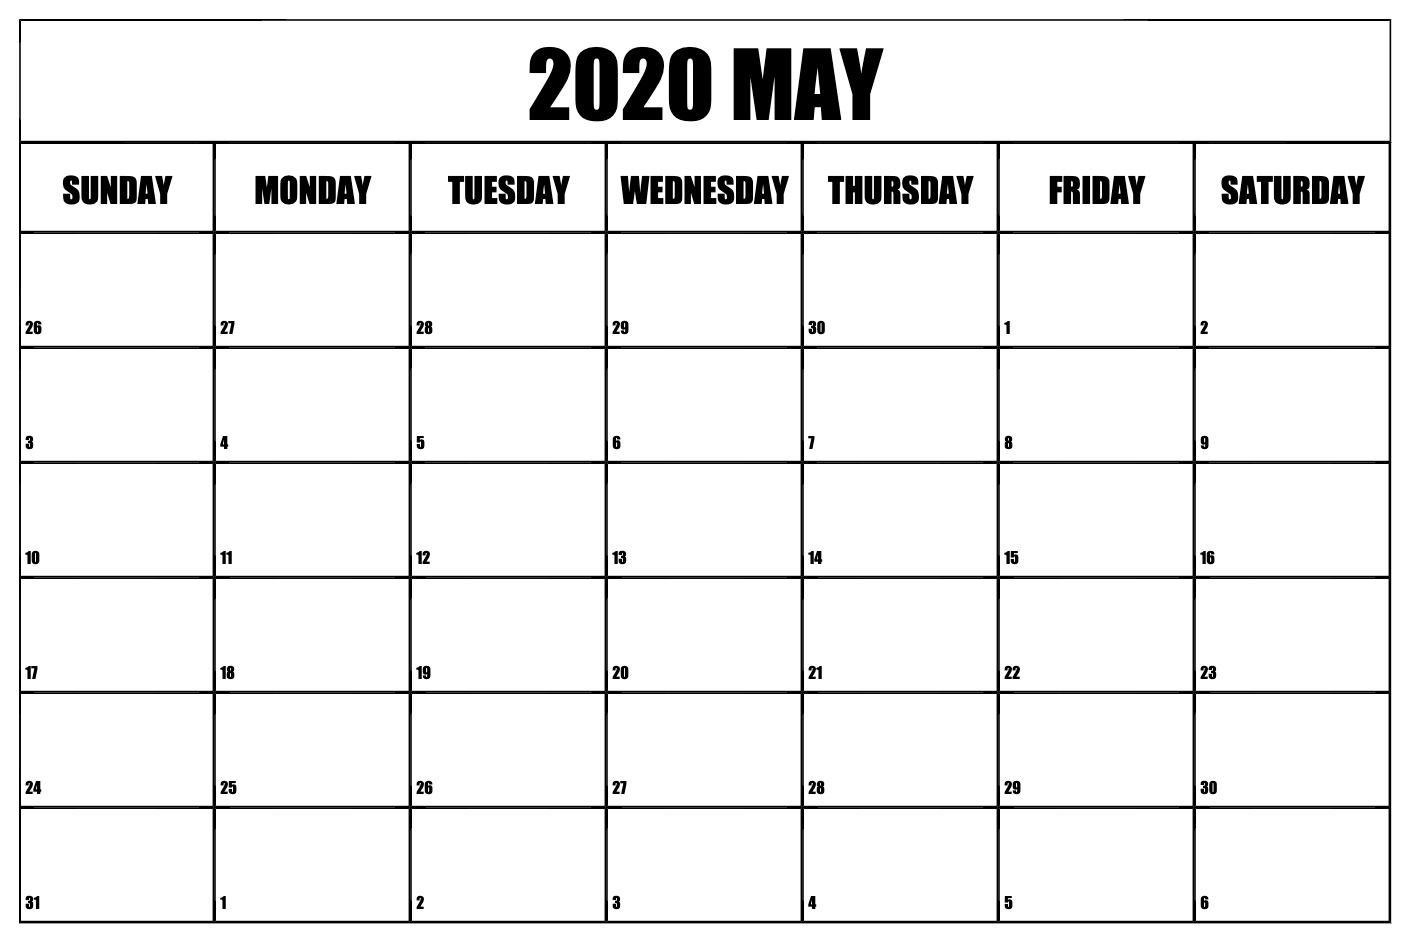 May 2020 Calendar Printable Template With Holidays Calendar